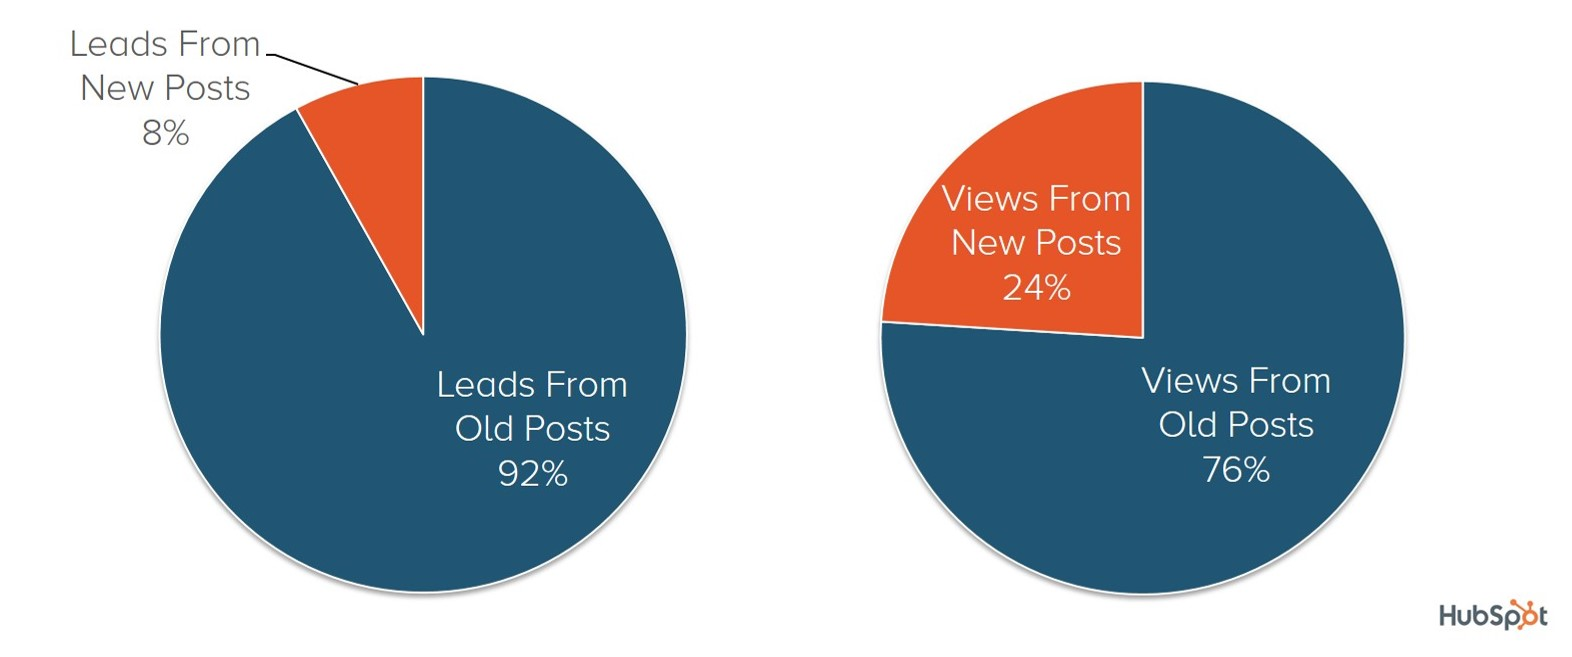 hubspot-old-new-blog-distribution.jpg